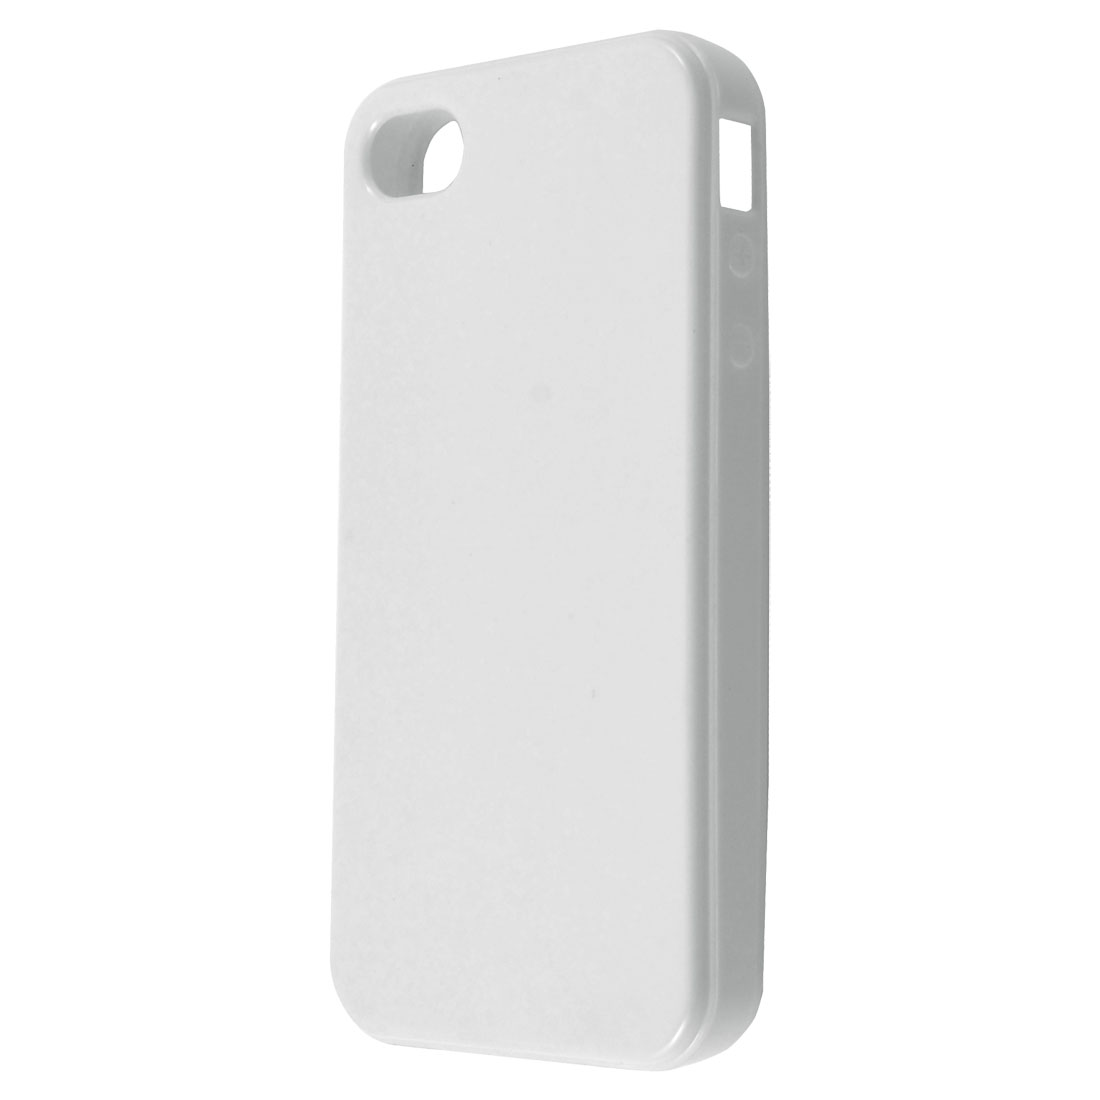 White TPU Soft Case Cover Protector for Apple iPhone 4 4S